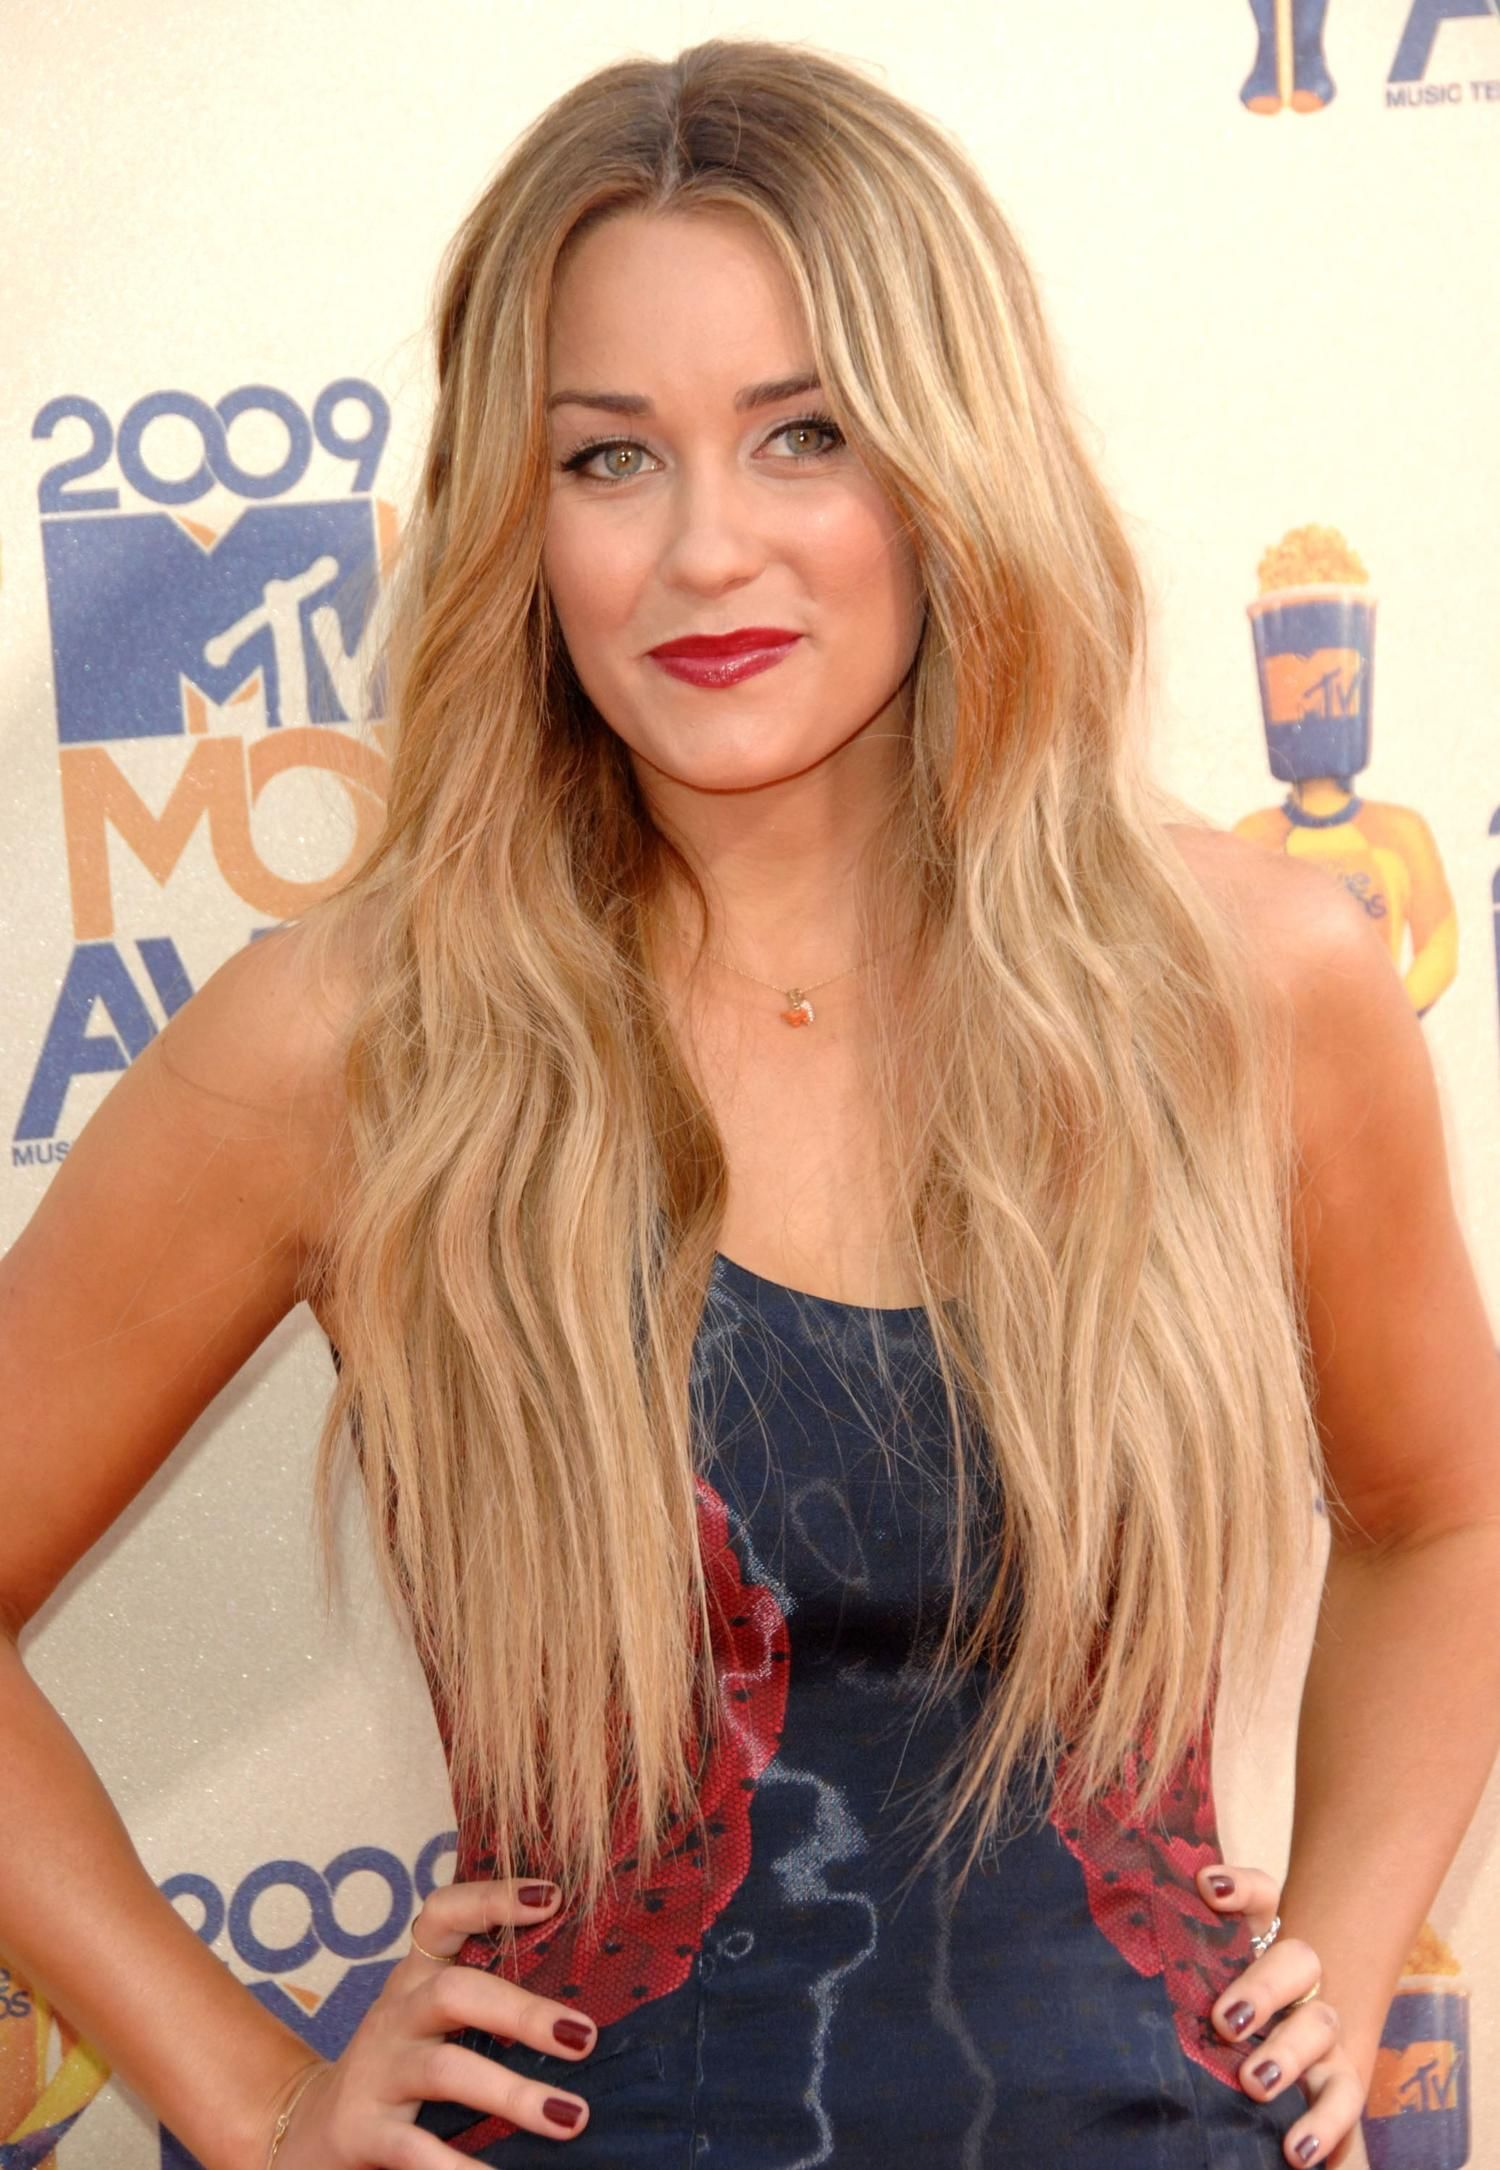 15 of Our Favorite Lauren Conrad Hairstyles Hair styles